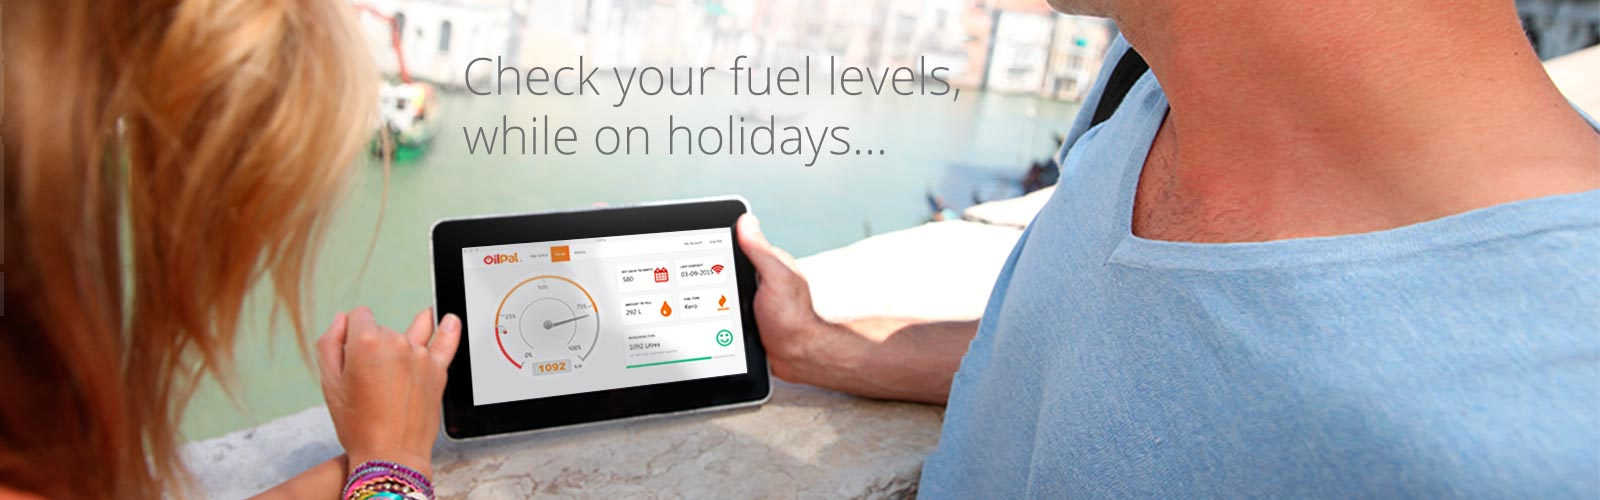 oilpal-monitor-your-home-heating-oil-anywhere